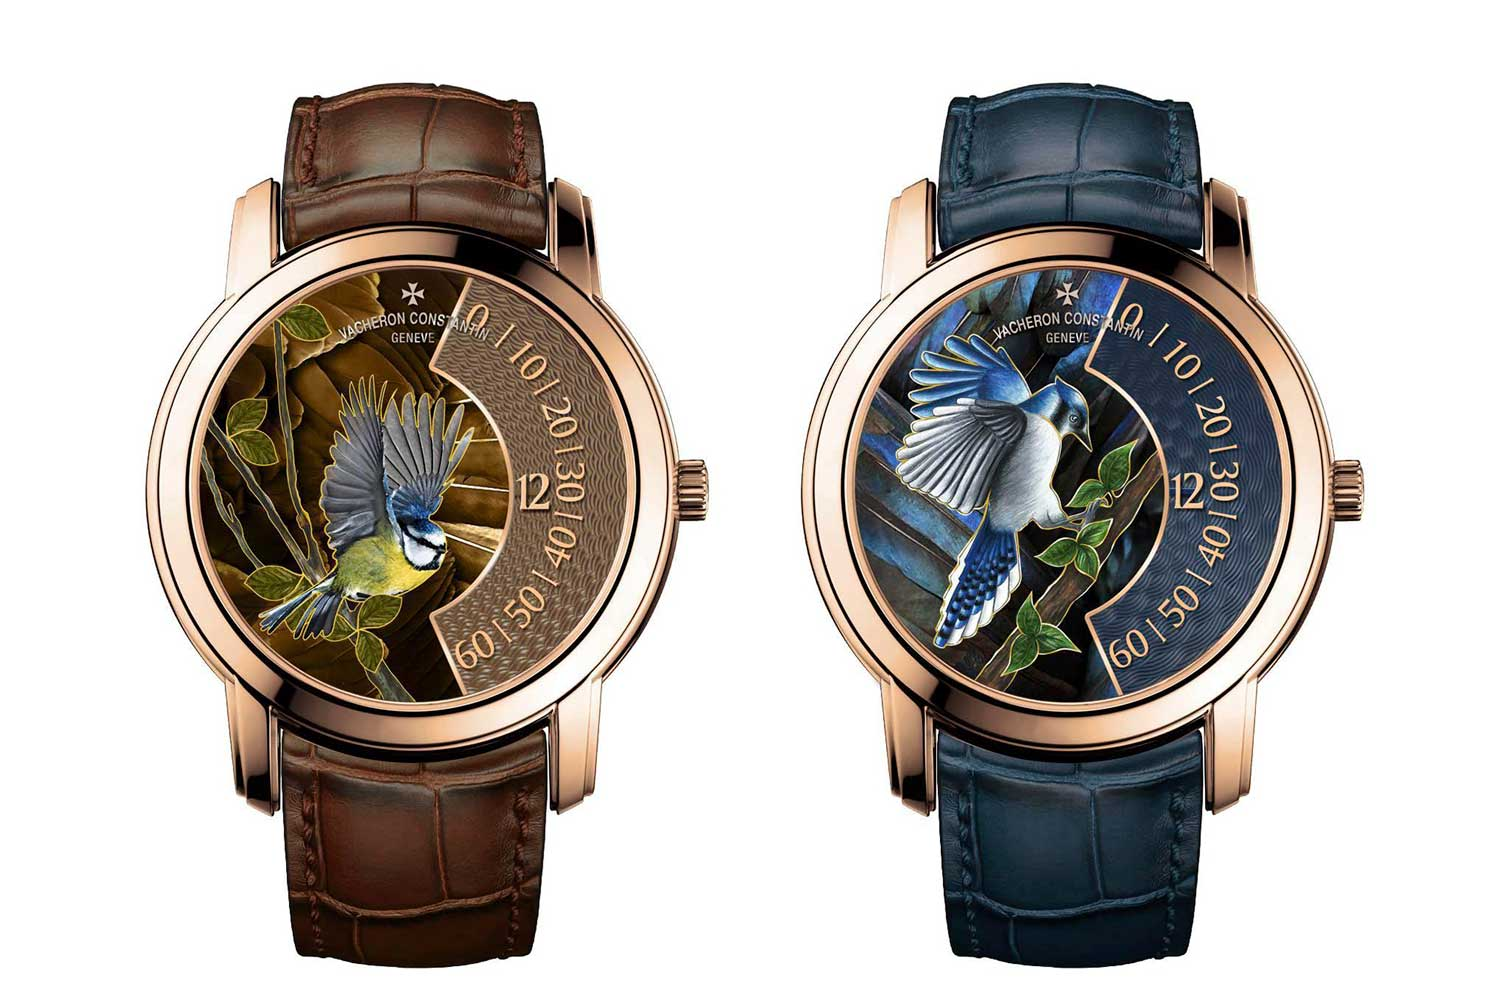 The blue tit and blue jay models of the Vacheron Constantin Les Cabinotiers Singing Birds collection.